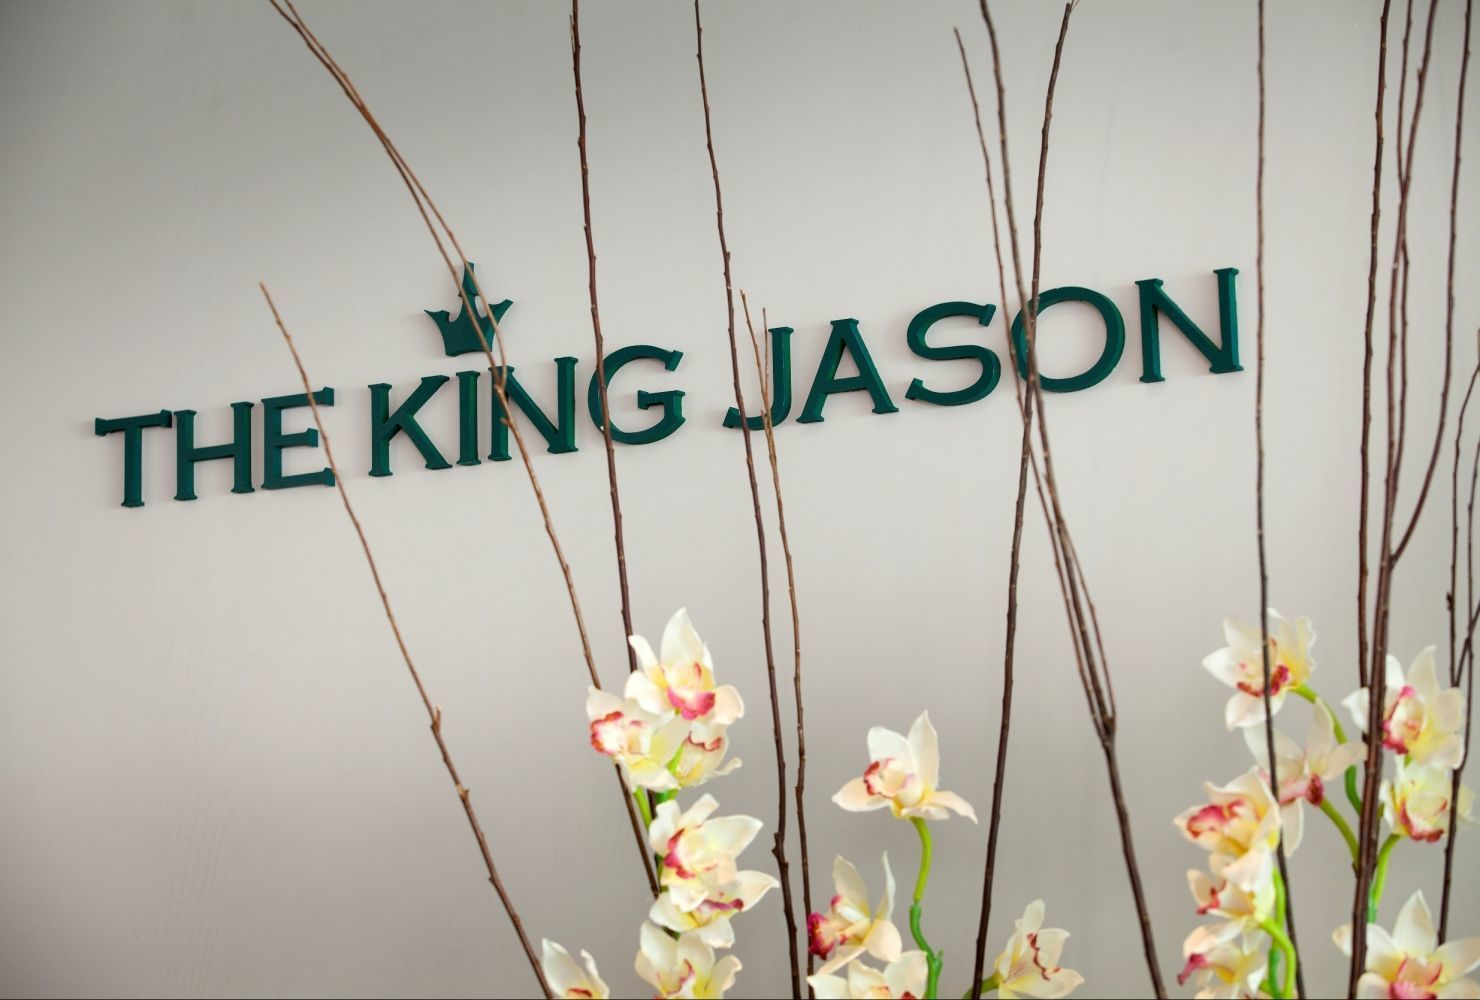 The King Jason Paphos